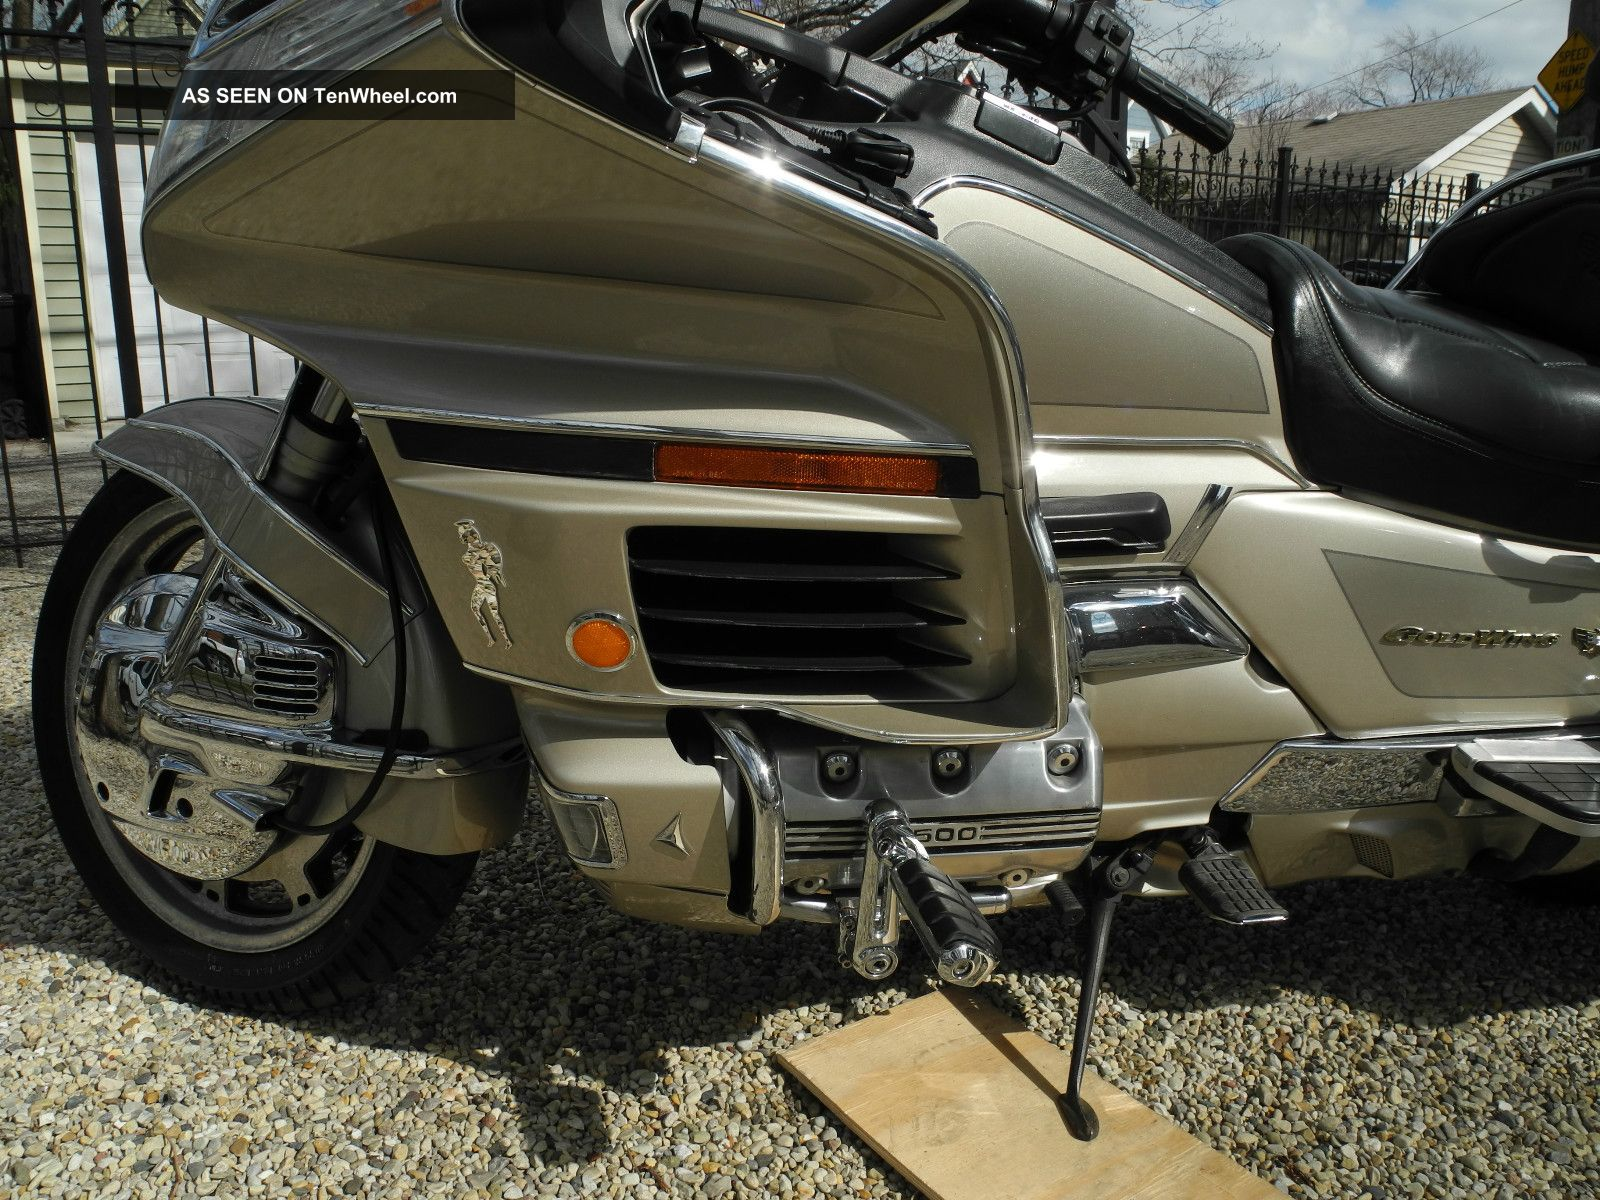 wiring diagram for 1990 1500 goldwing